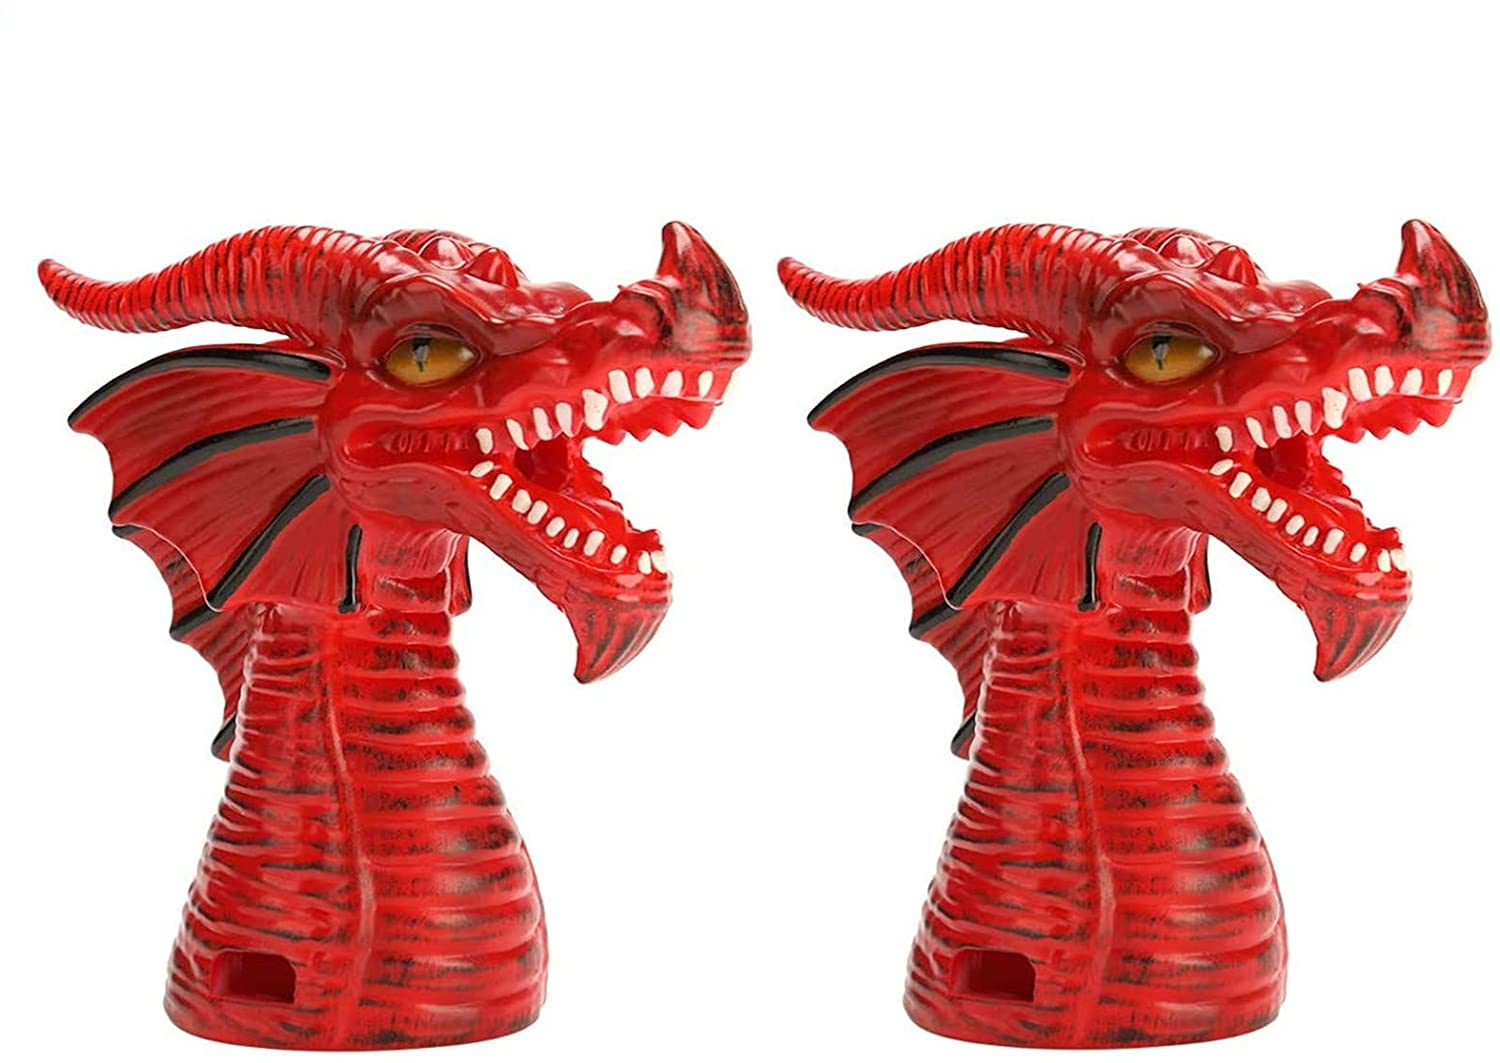 Tantrum Tow Ropes Fire-Breathing Dragon Original Steam Release Accessory, Steam Release Diverter for Instant Pot Pressure Cooker Ninja Foodi Kitchen Supplies, Cupboards/Cabinets Savior (2PC/Red)